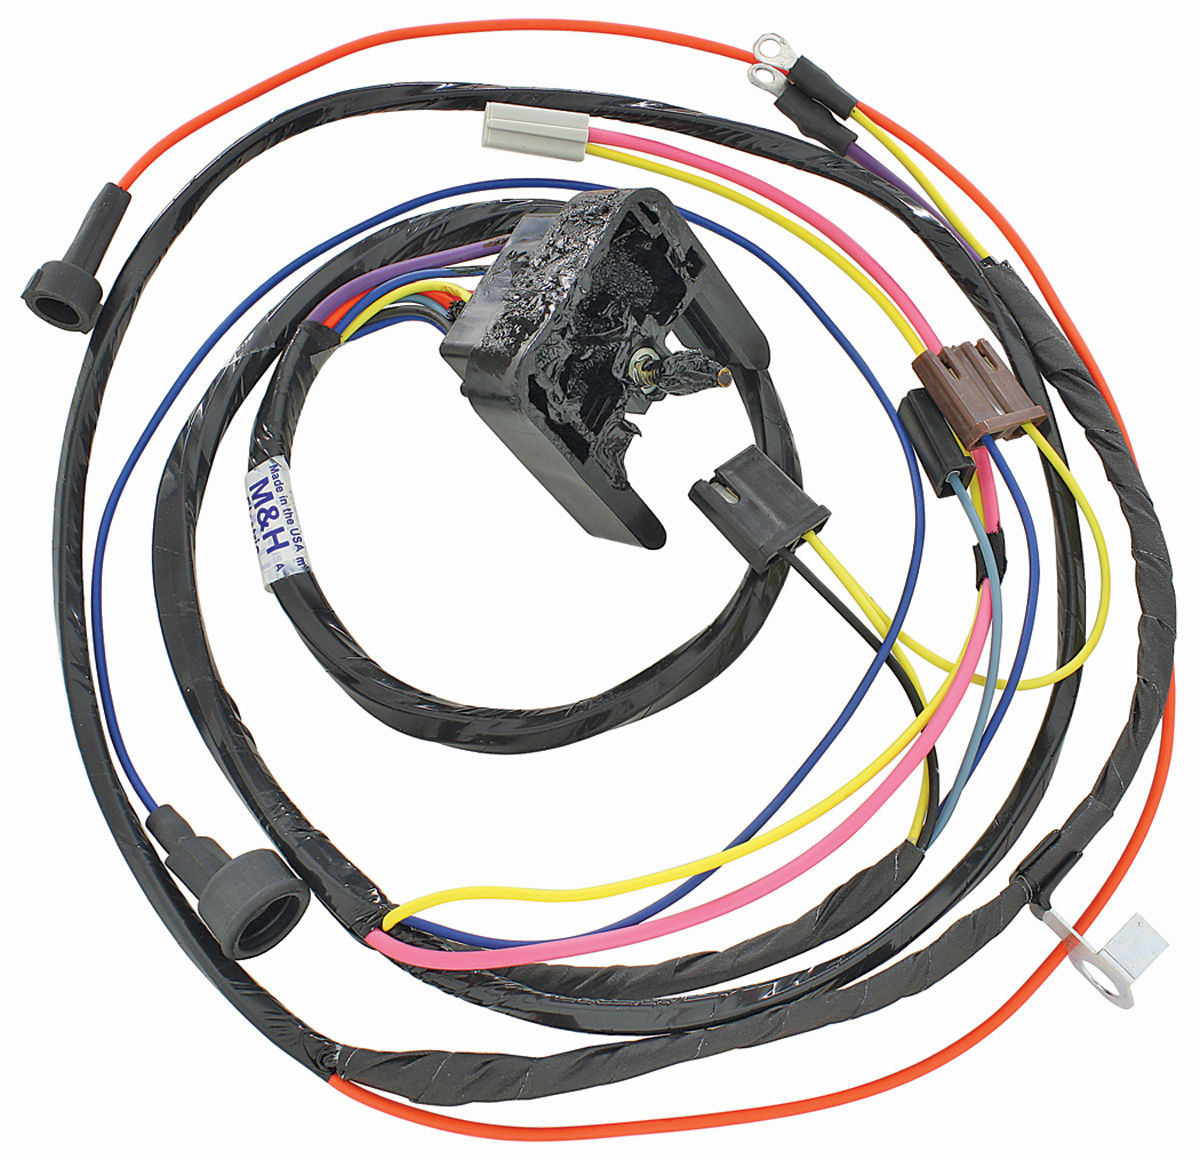 38947 lrg?v=102520130818 m&h 1968 69 chevelle engine harness 396 hei w warning lights 1972 chevelle wiring harness at webbmarketing.co